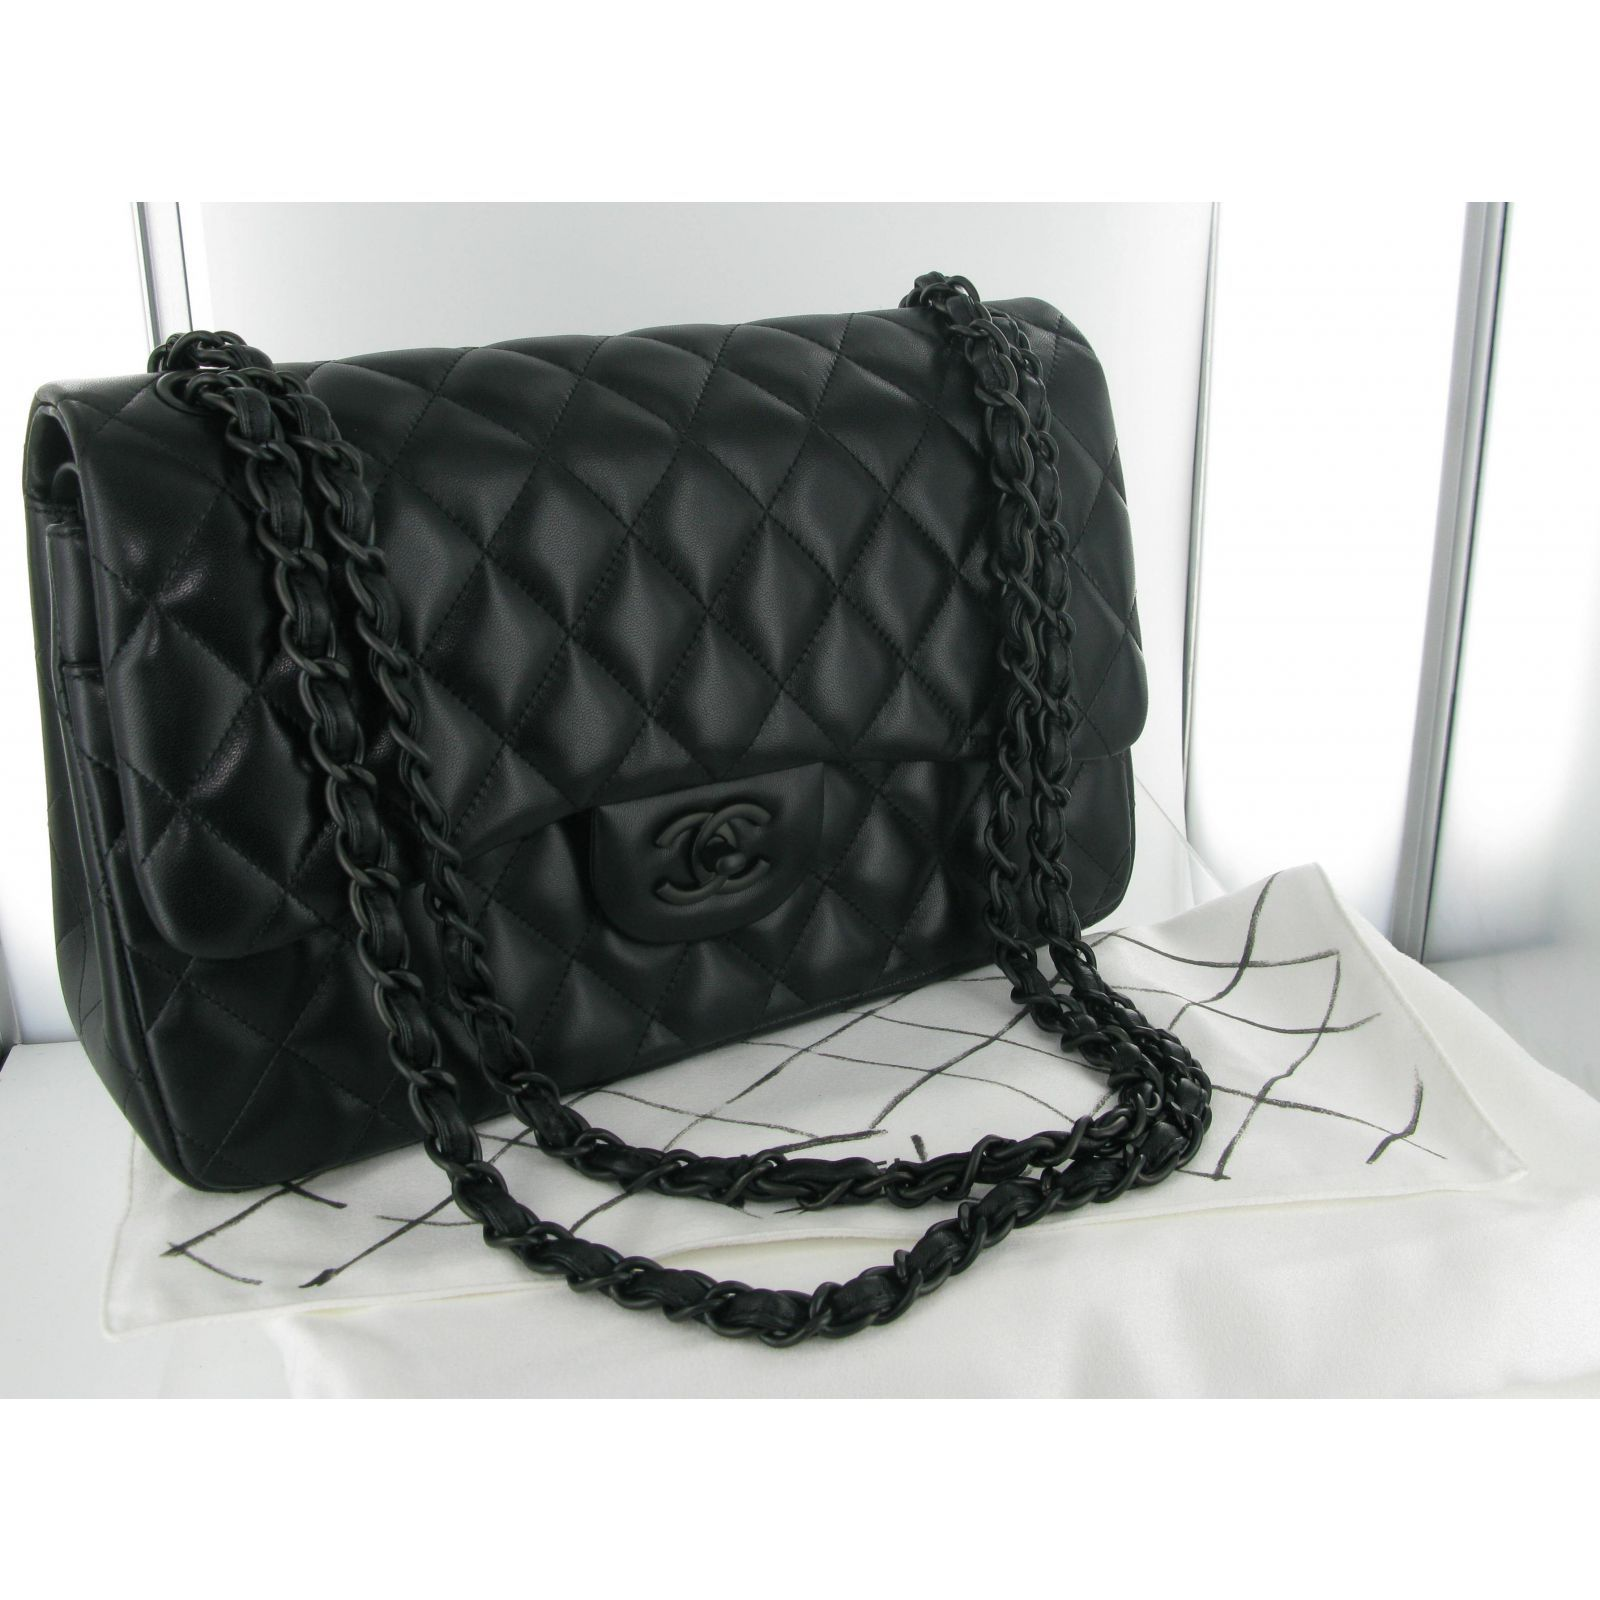 Ultamite Chanel Bag | Bags, Classic and Chanel bags